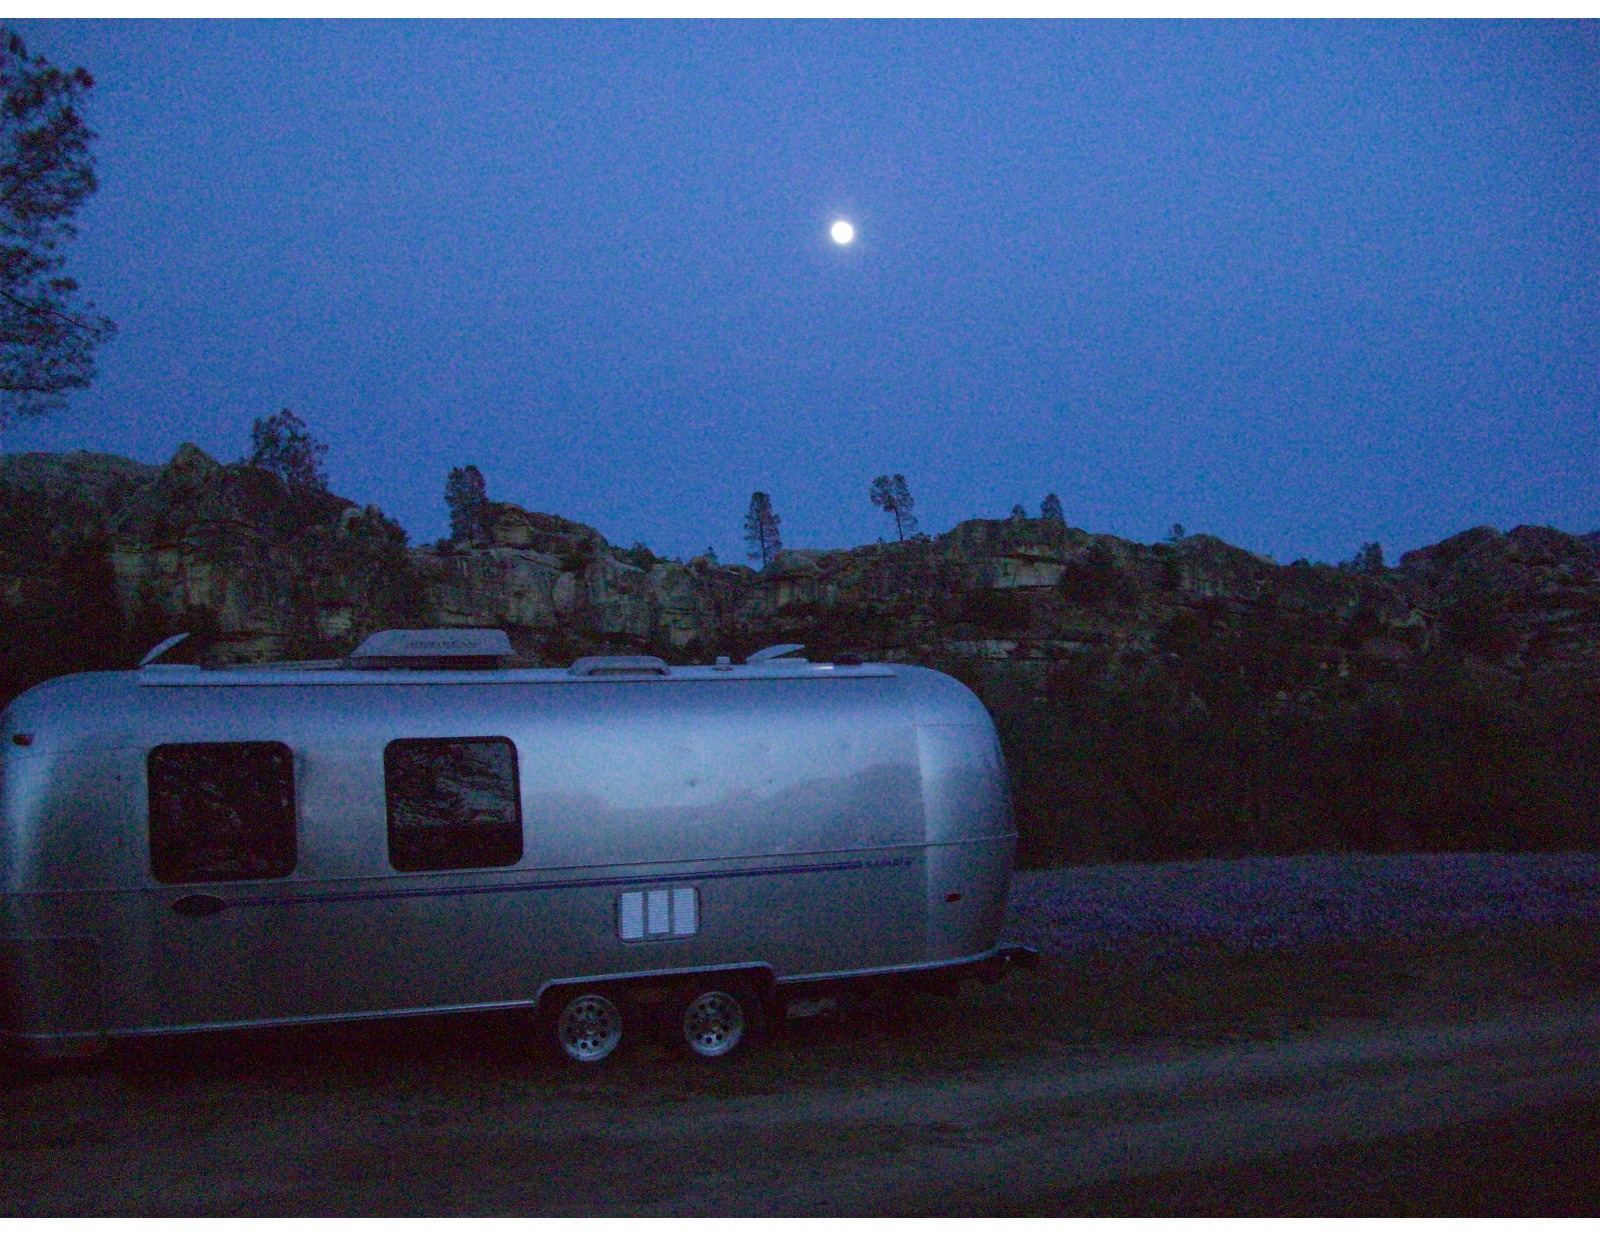 Click image for larger version  Name:Liggett Moon on AS.JPG Views:73 Size:608.3 KB ID:72248